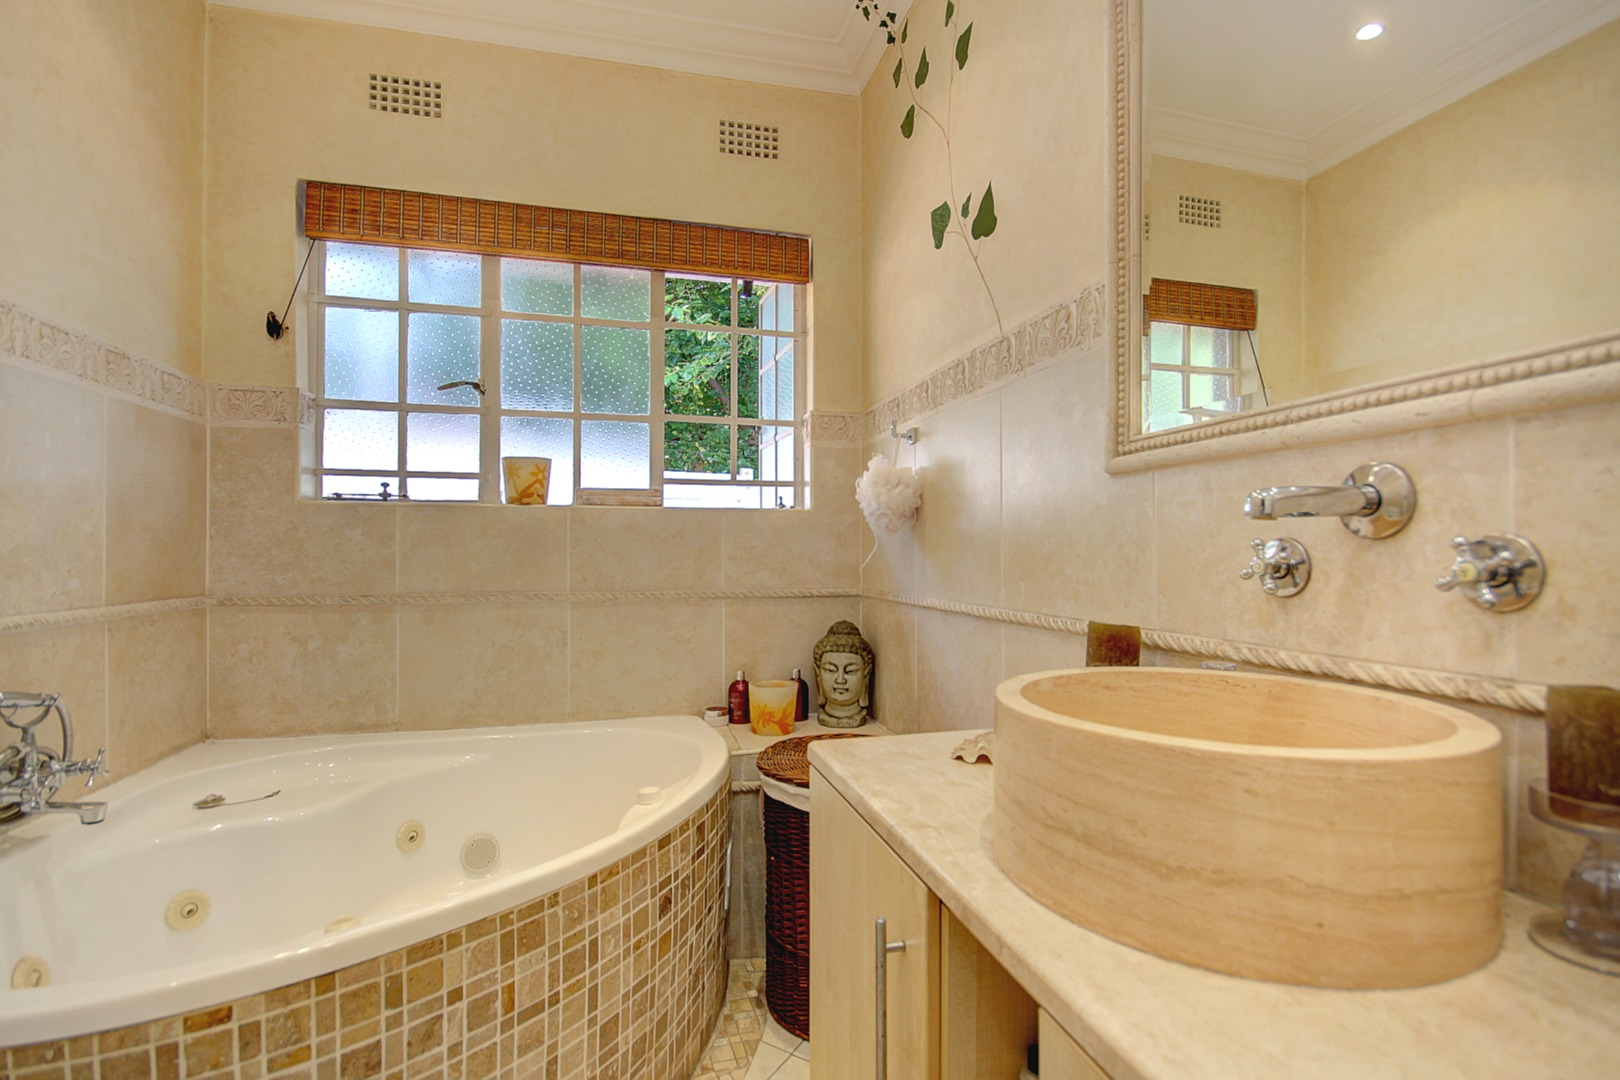 4 Bedroom House For Sale in Ferndale